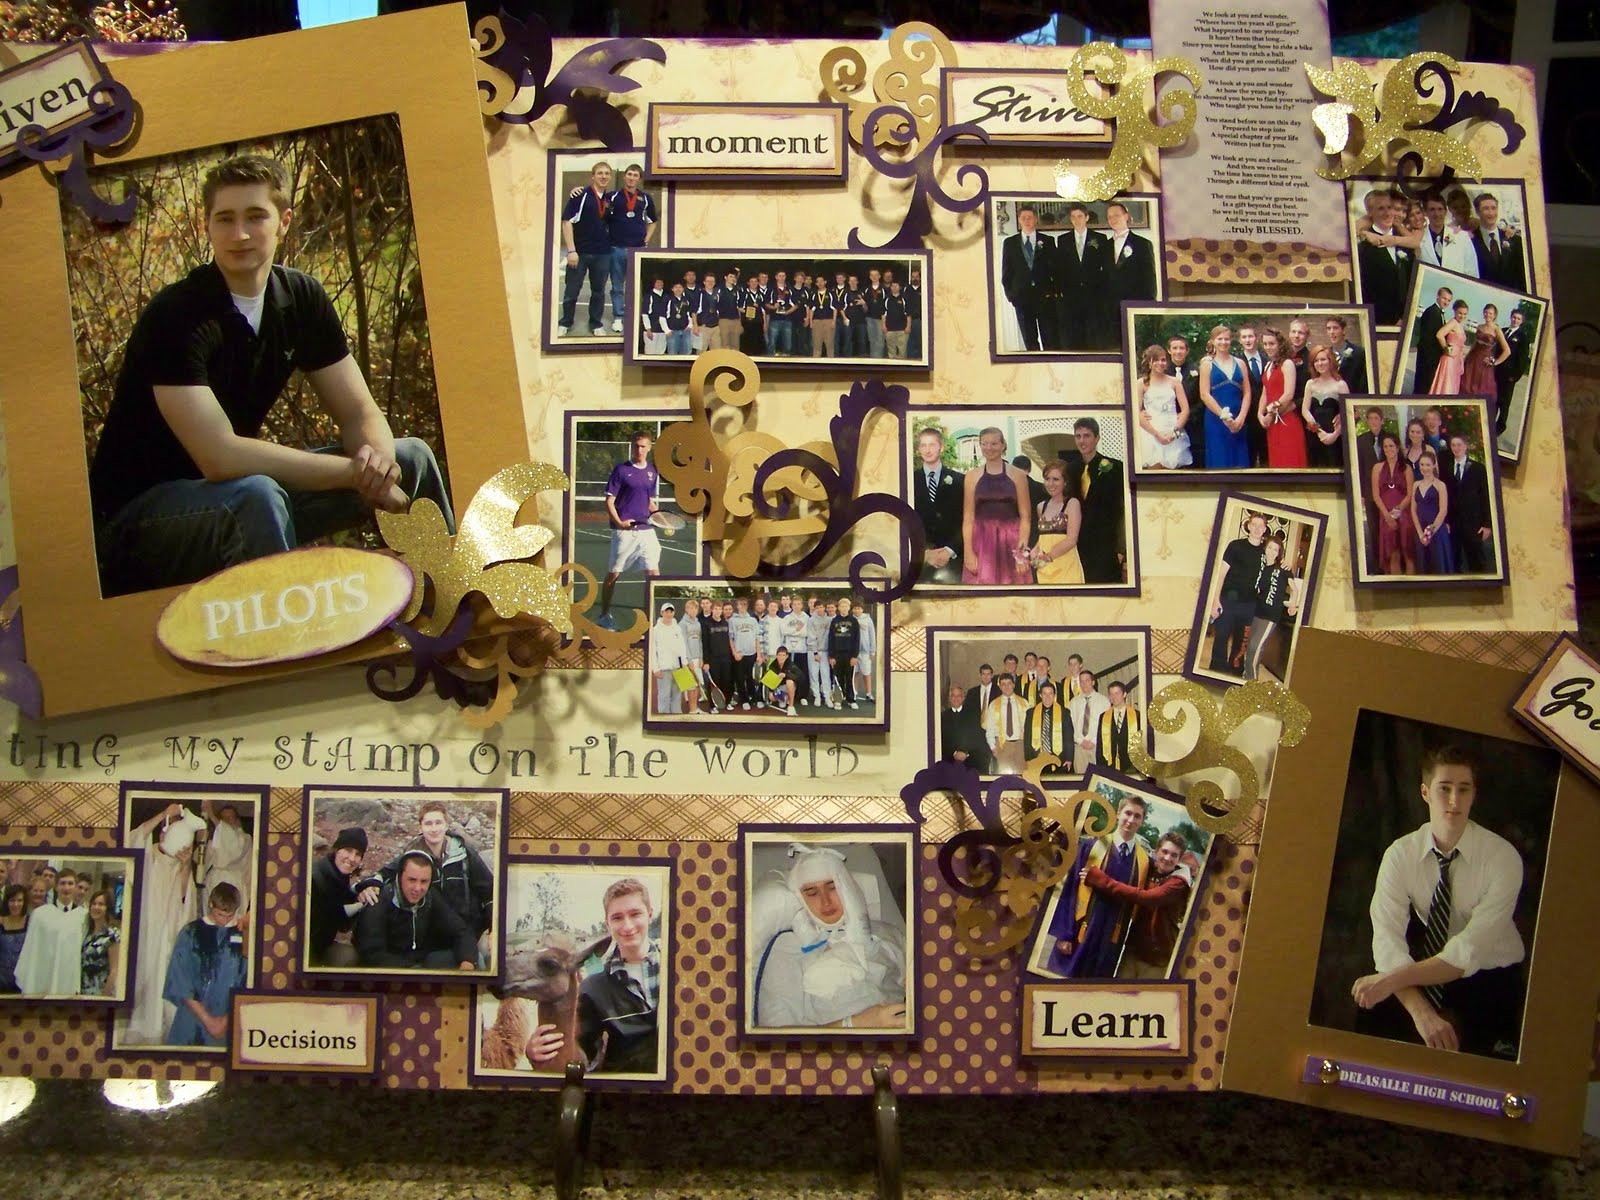 ... one of a kind graduation gift or planning a graduation party this